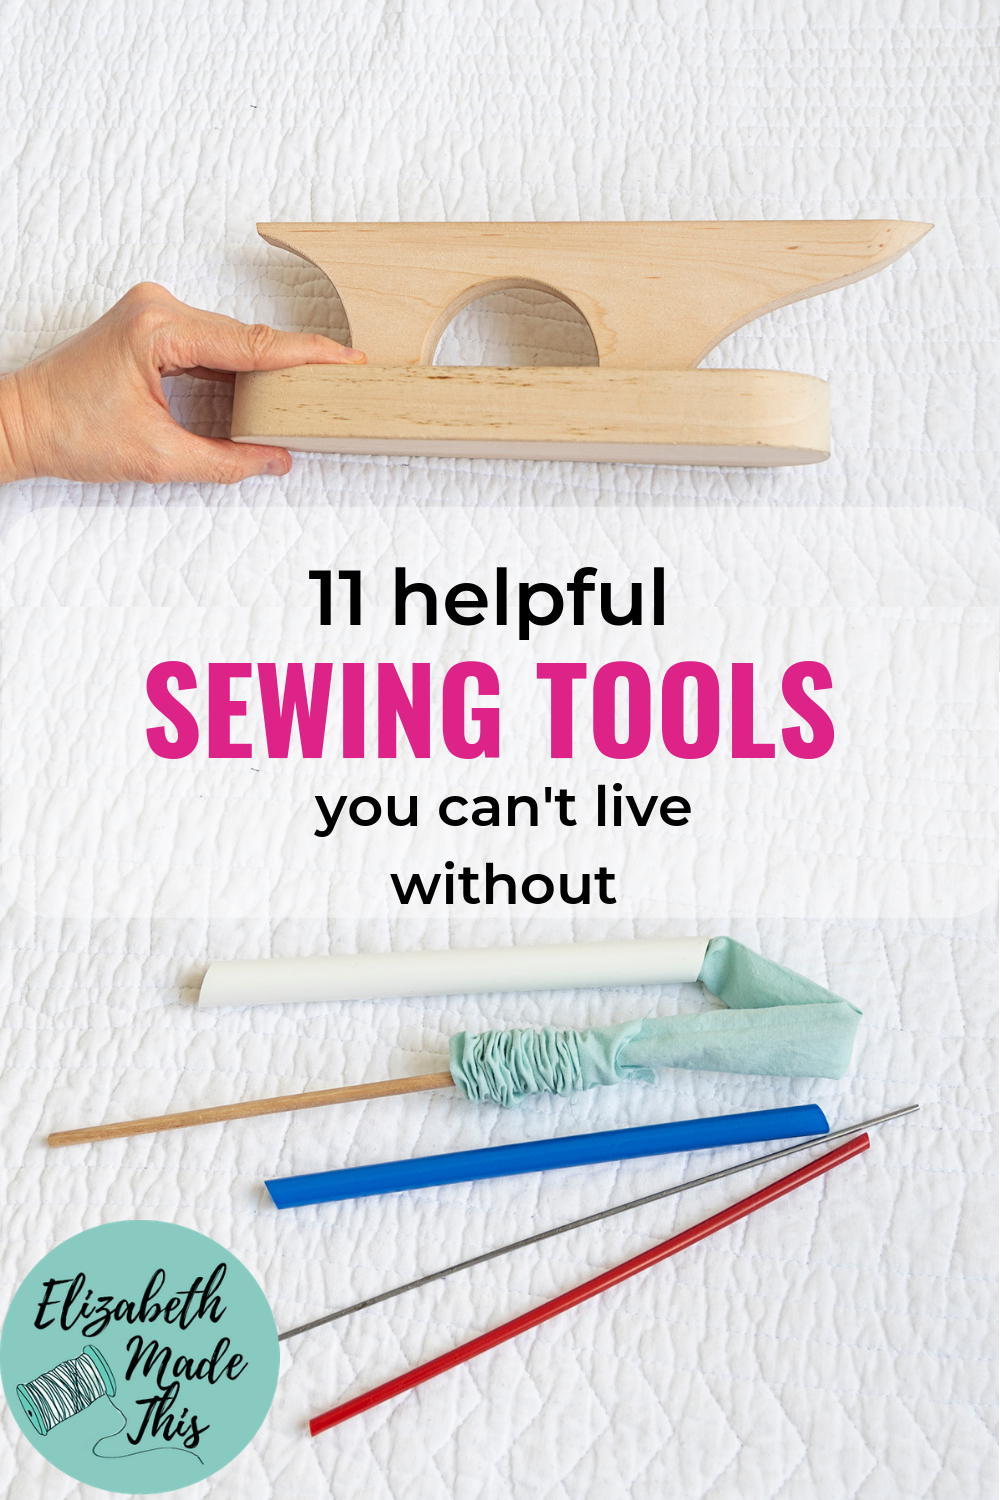 Must have helpful sewing tools and how to use them